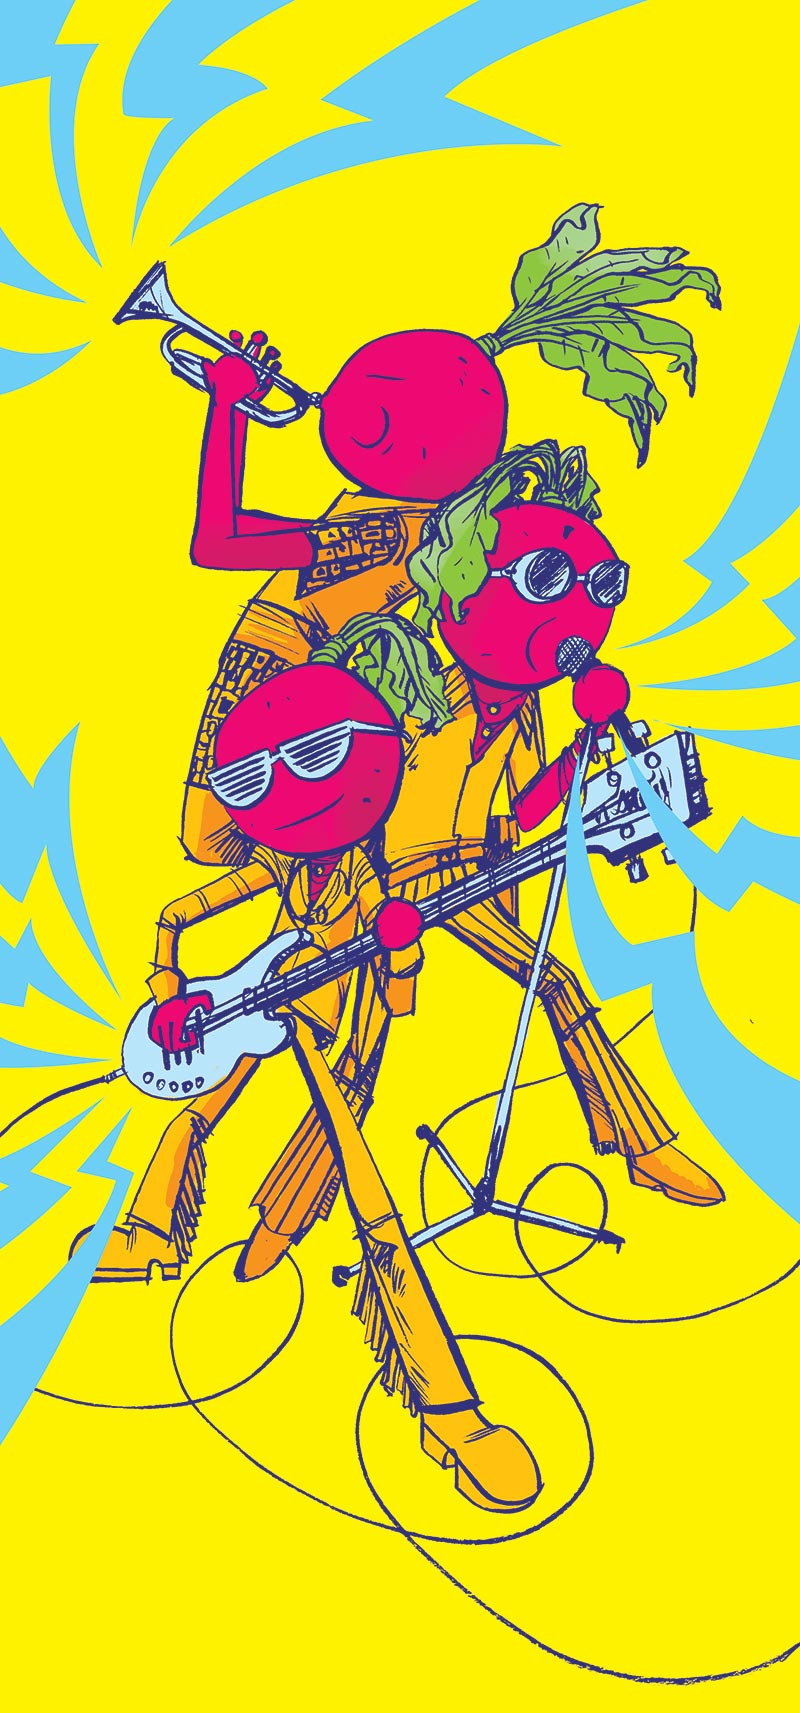 Illustration of Beets playing music for Northern Virginia Magazine